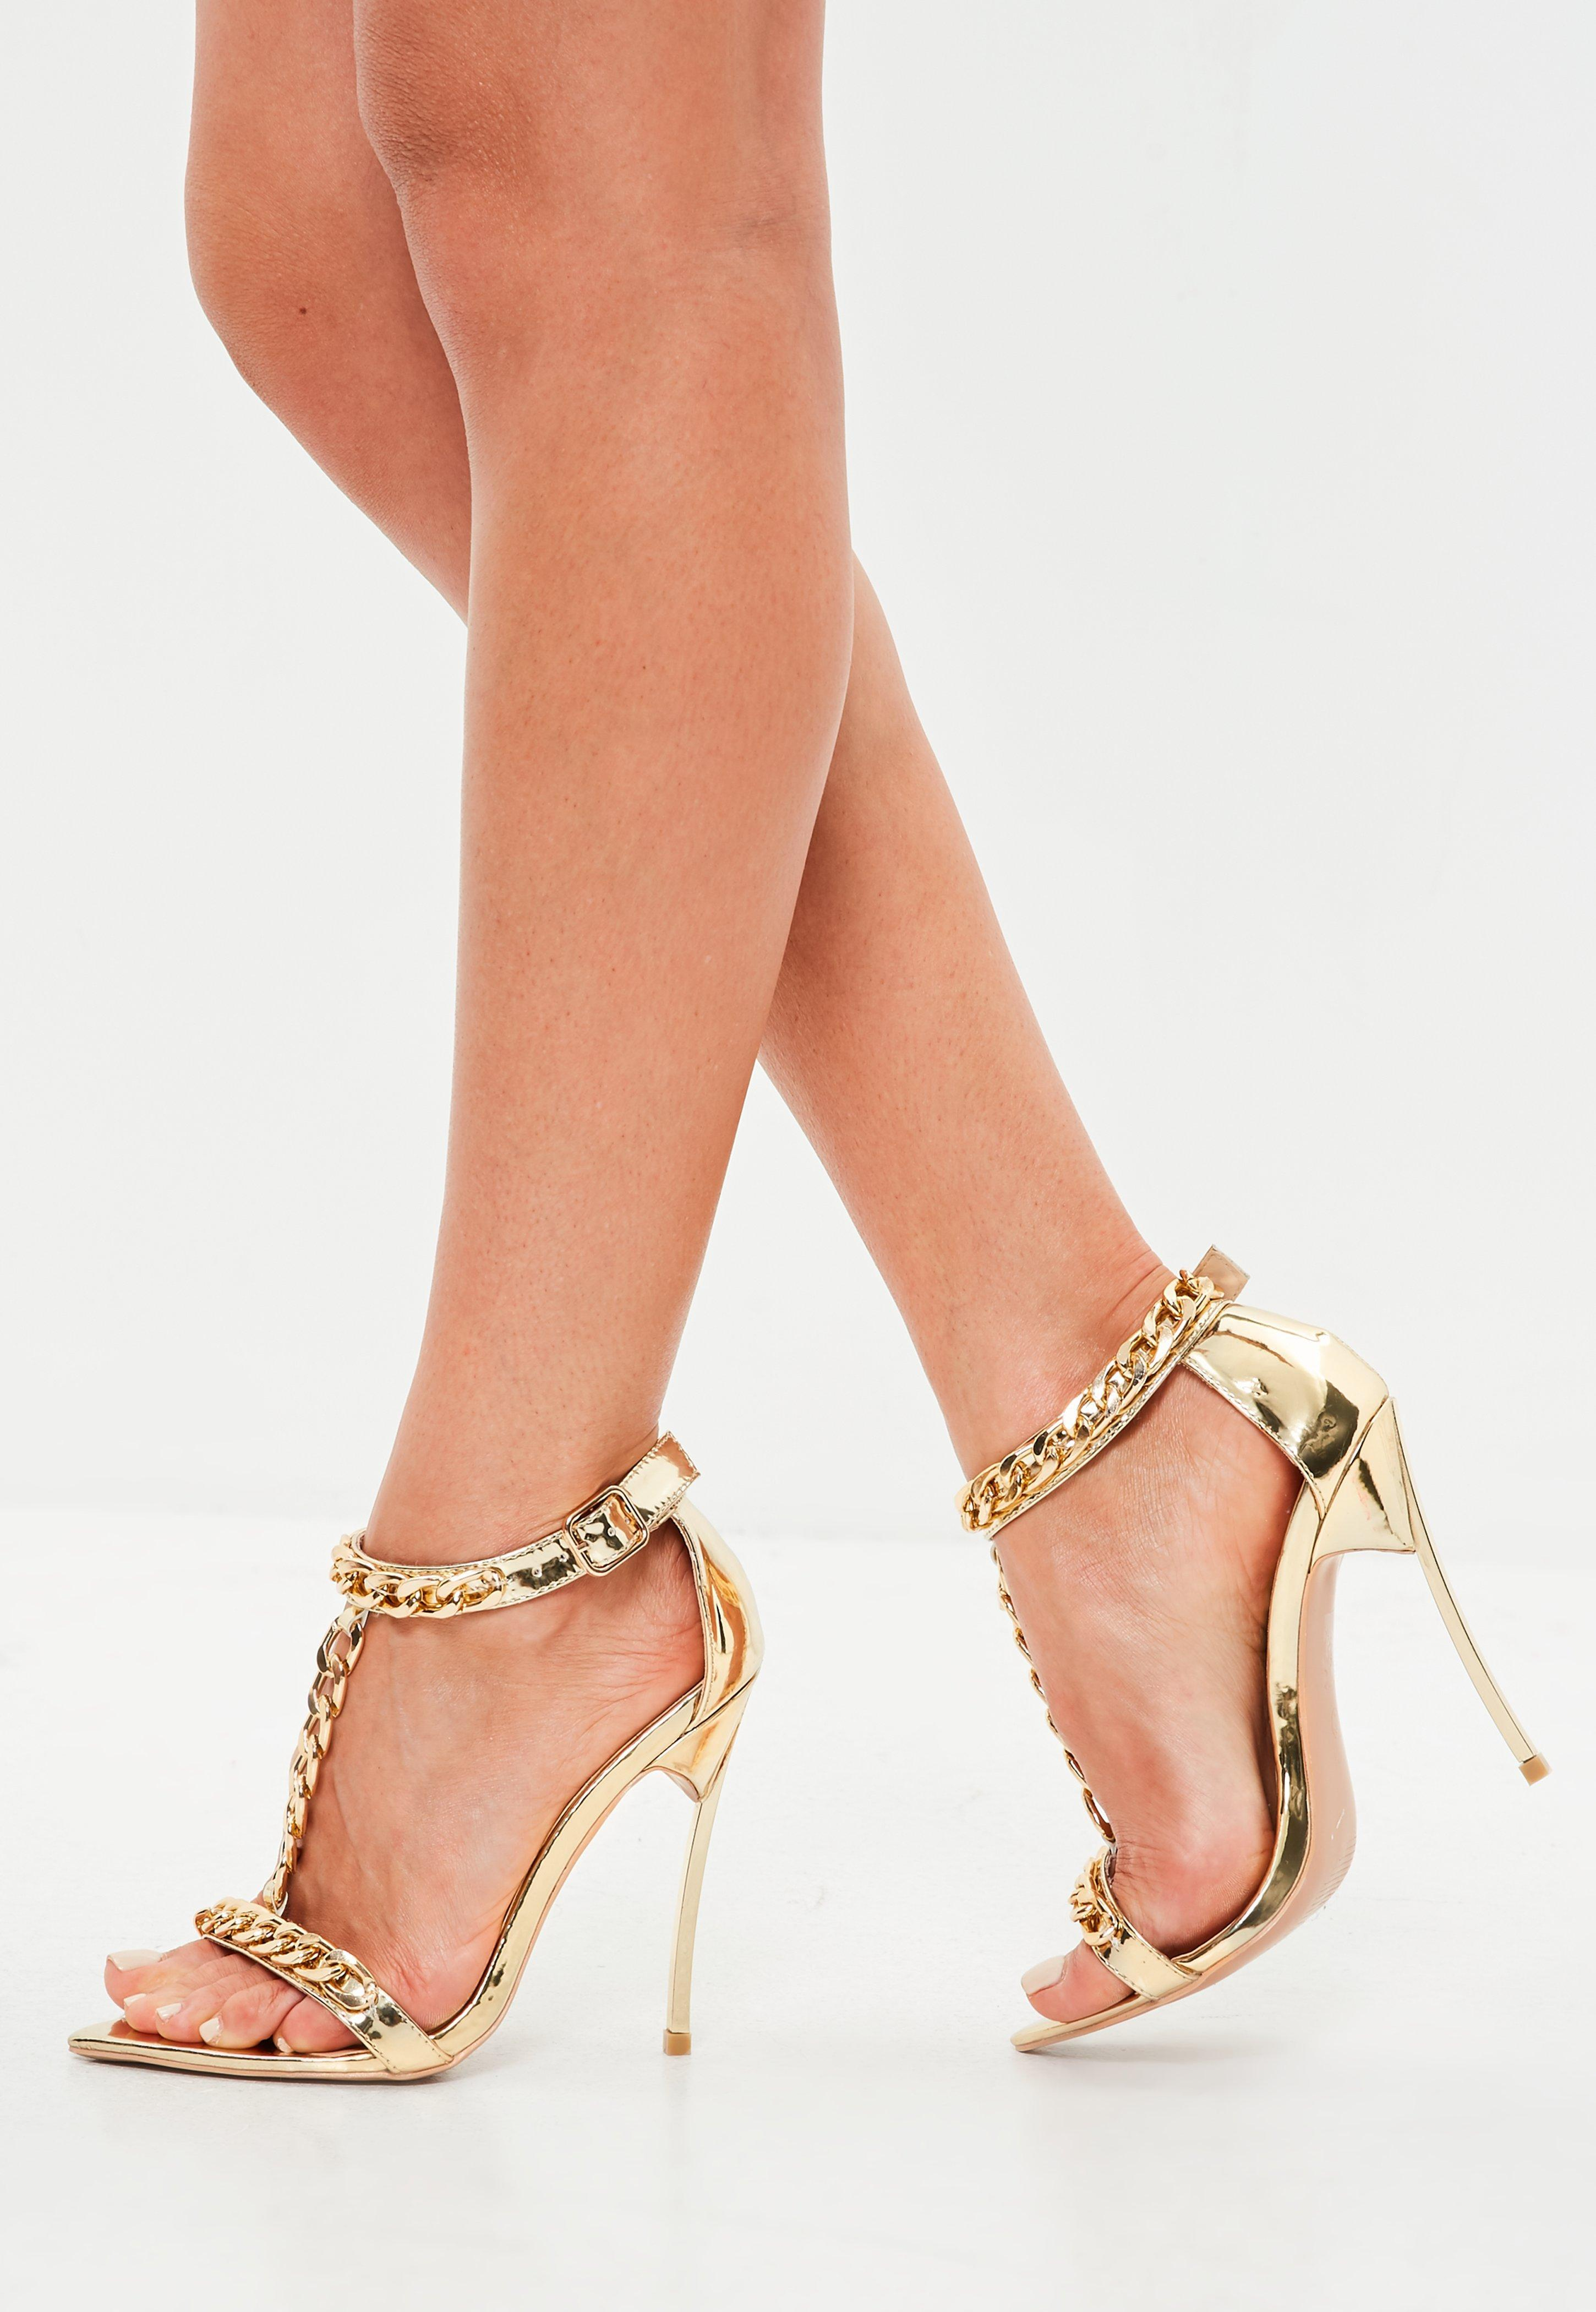 90516e611cdd6 Missguided Peace + Love Gold Chain Embellished Sandal in Metallic - Lyst